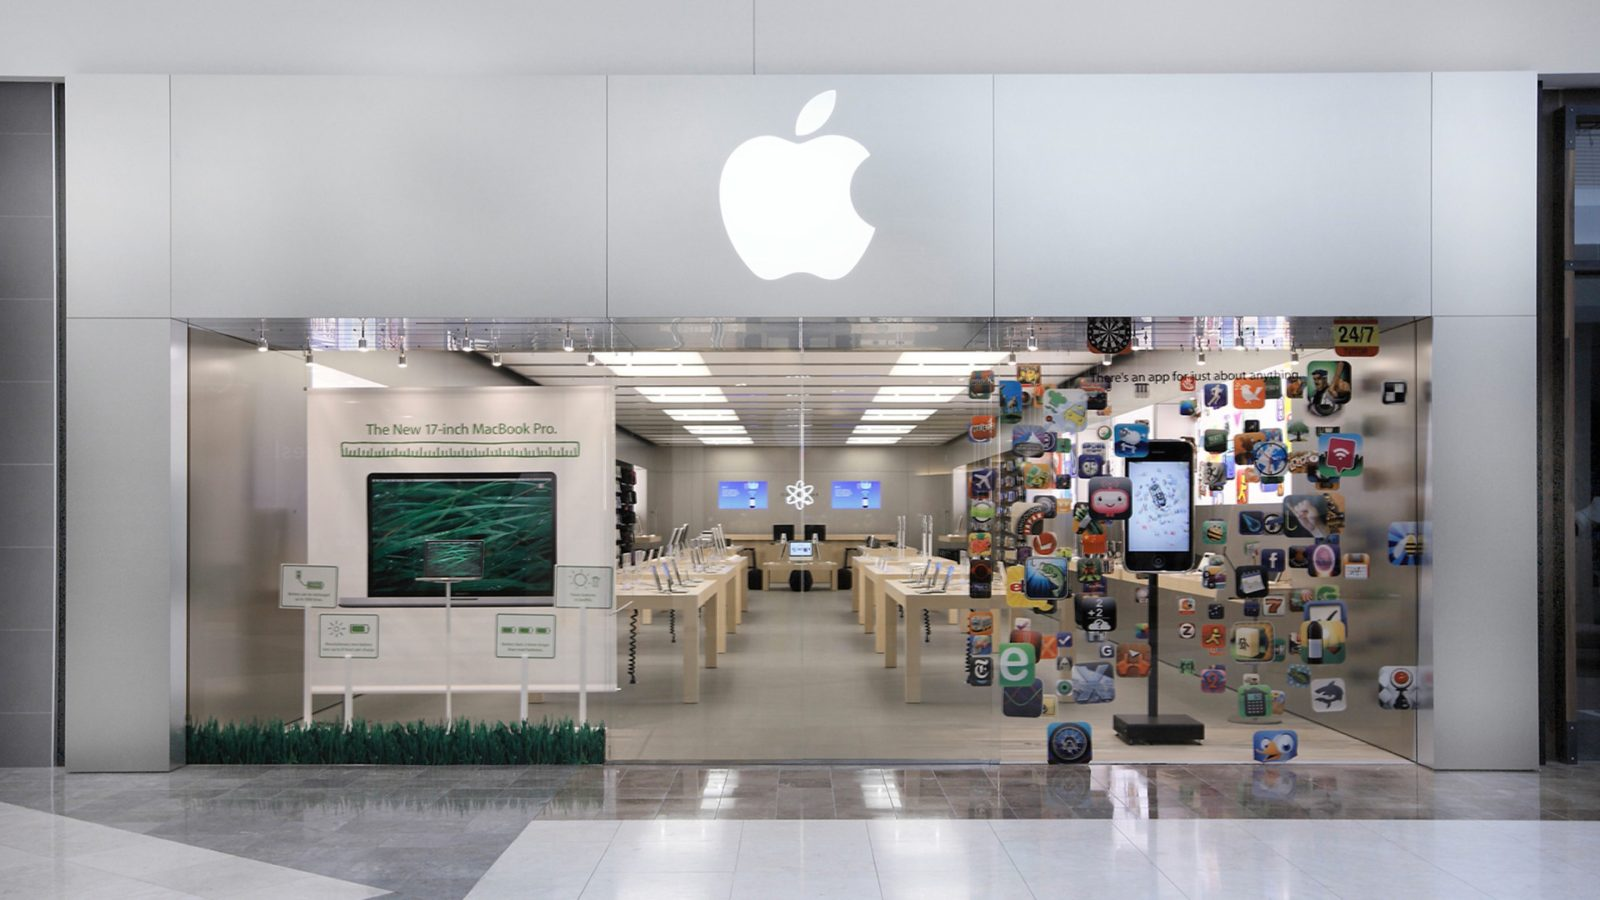 Australia?s second modernized Apple store opening in Robina on September 29th